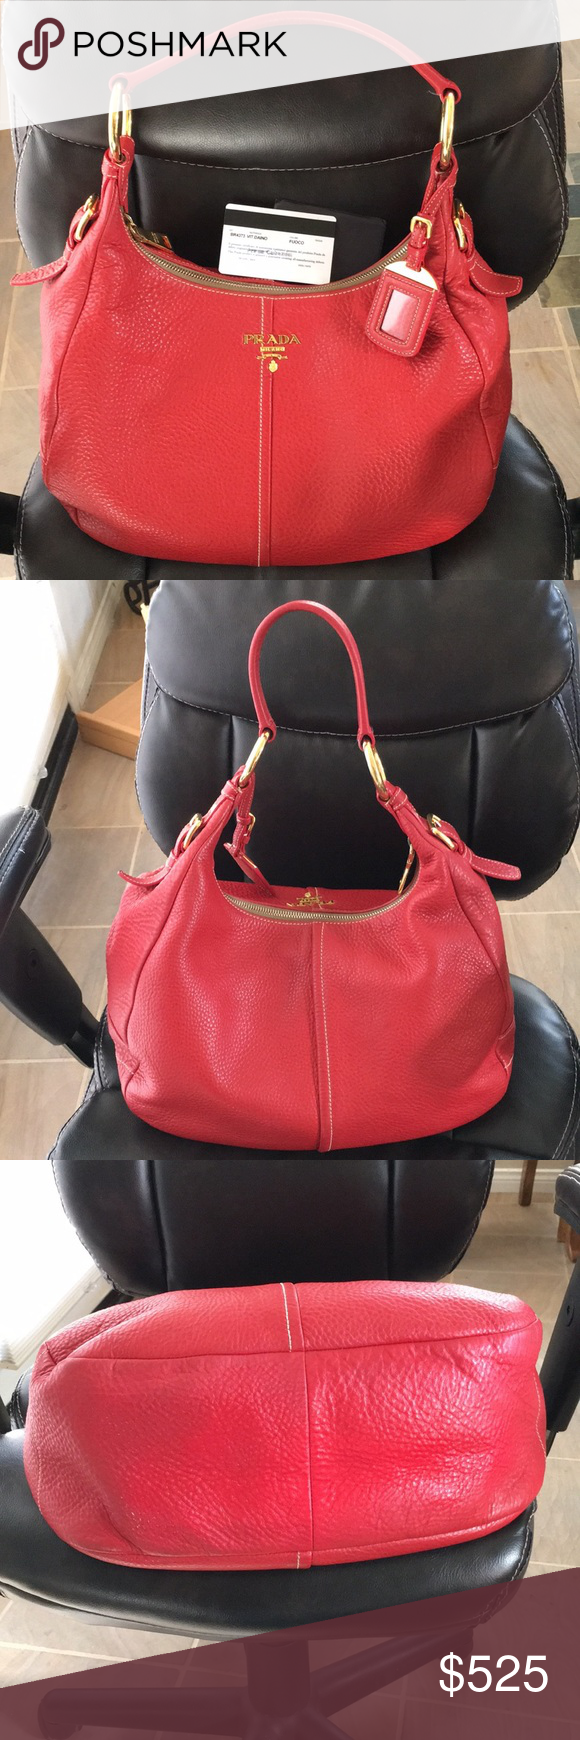 a5a2d92fd97a Authentic Prada leather bag Authentic red leather Prada bag. Authenticity  certificate card. BR47373 Vitello Daino in color Fuoco. Gold hardware.